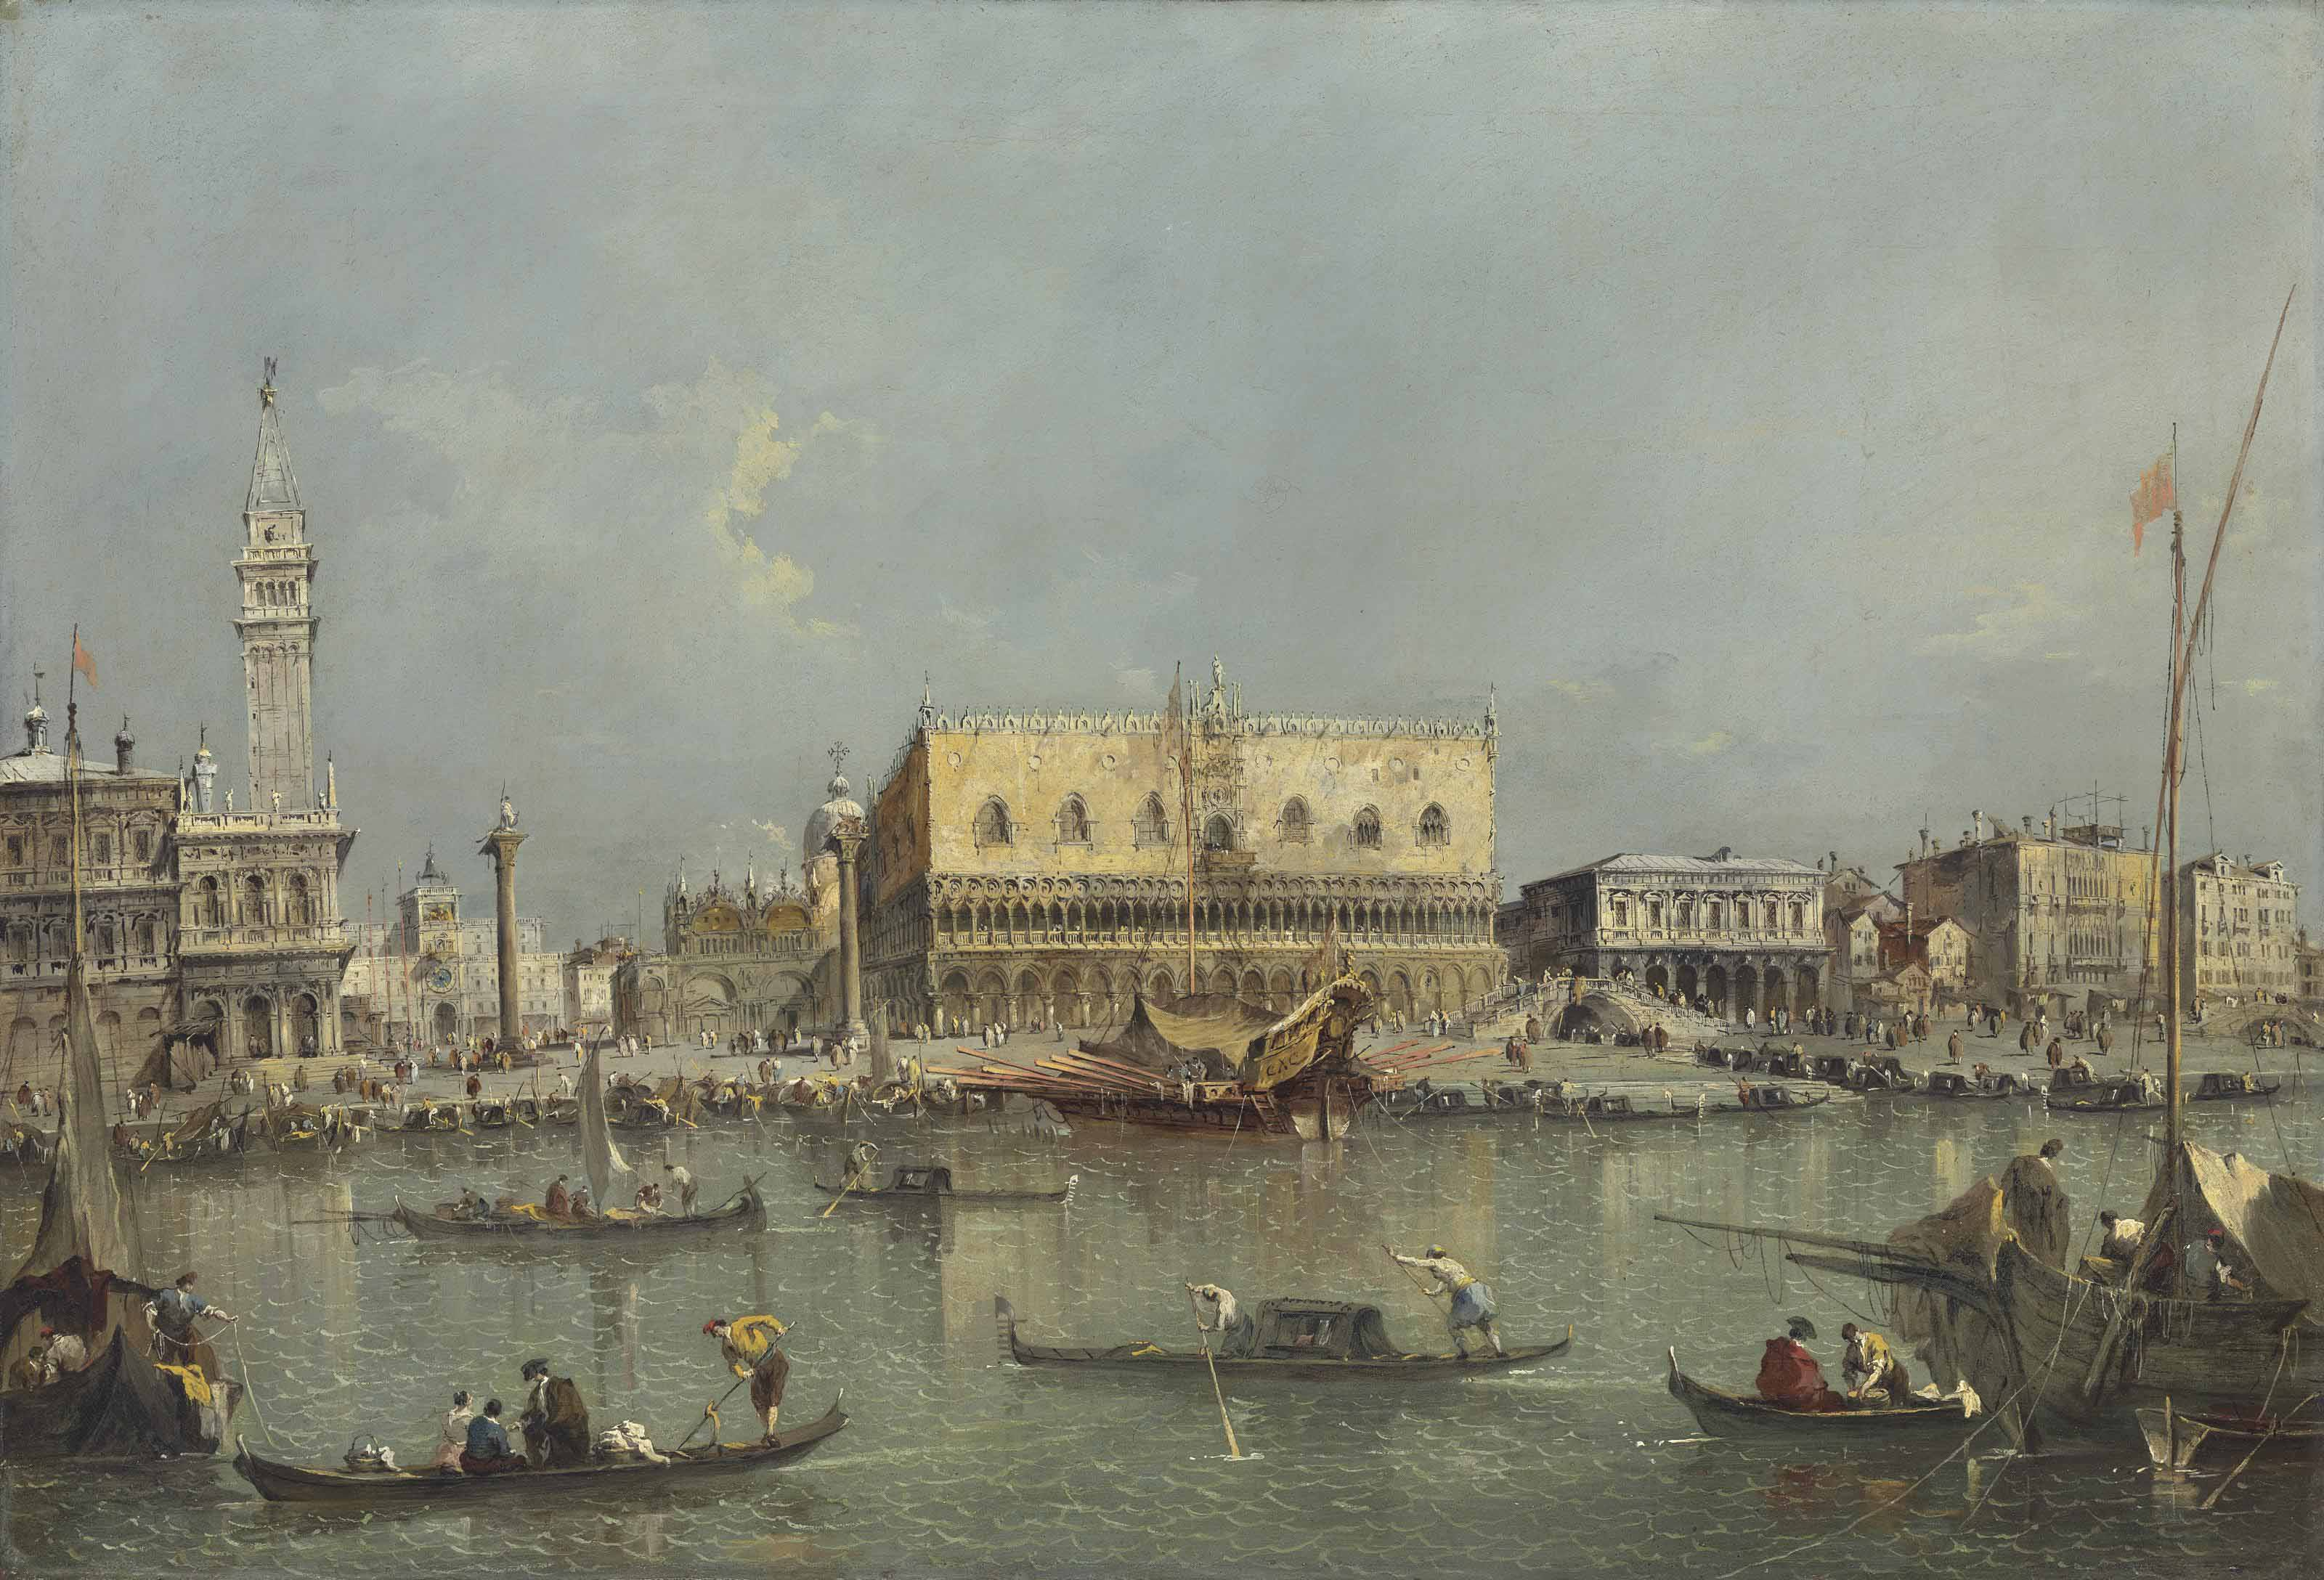 Venice, the Bacino di San Marco, with the Piazzetta and the Doge's Palace